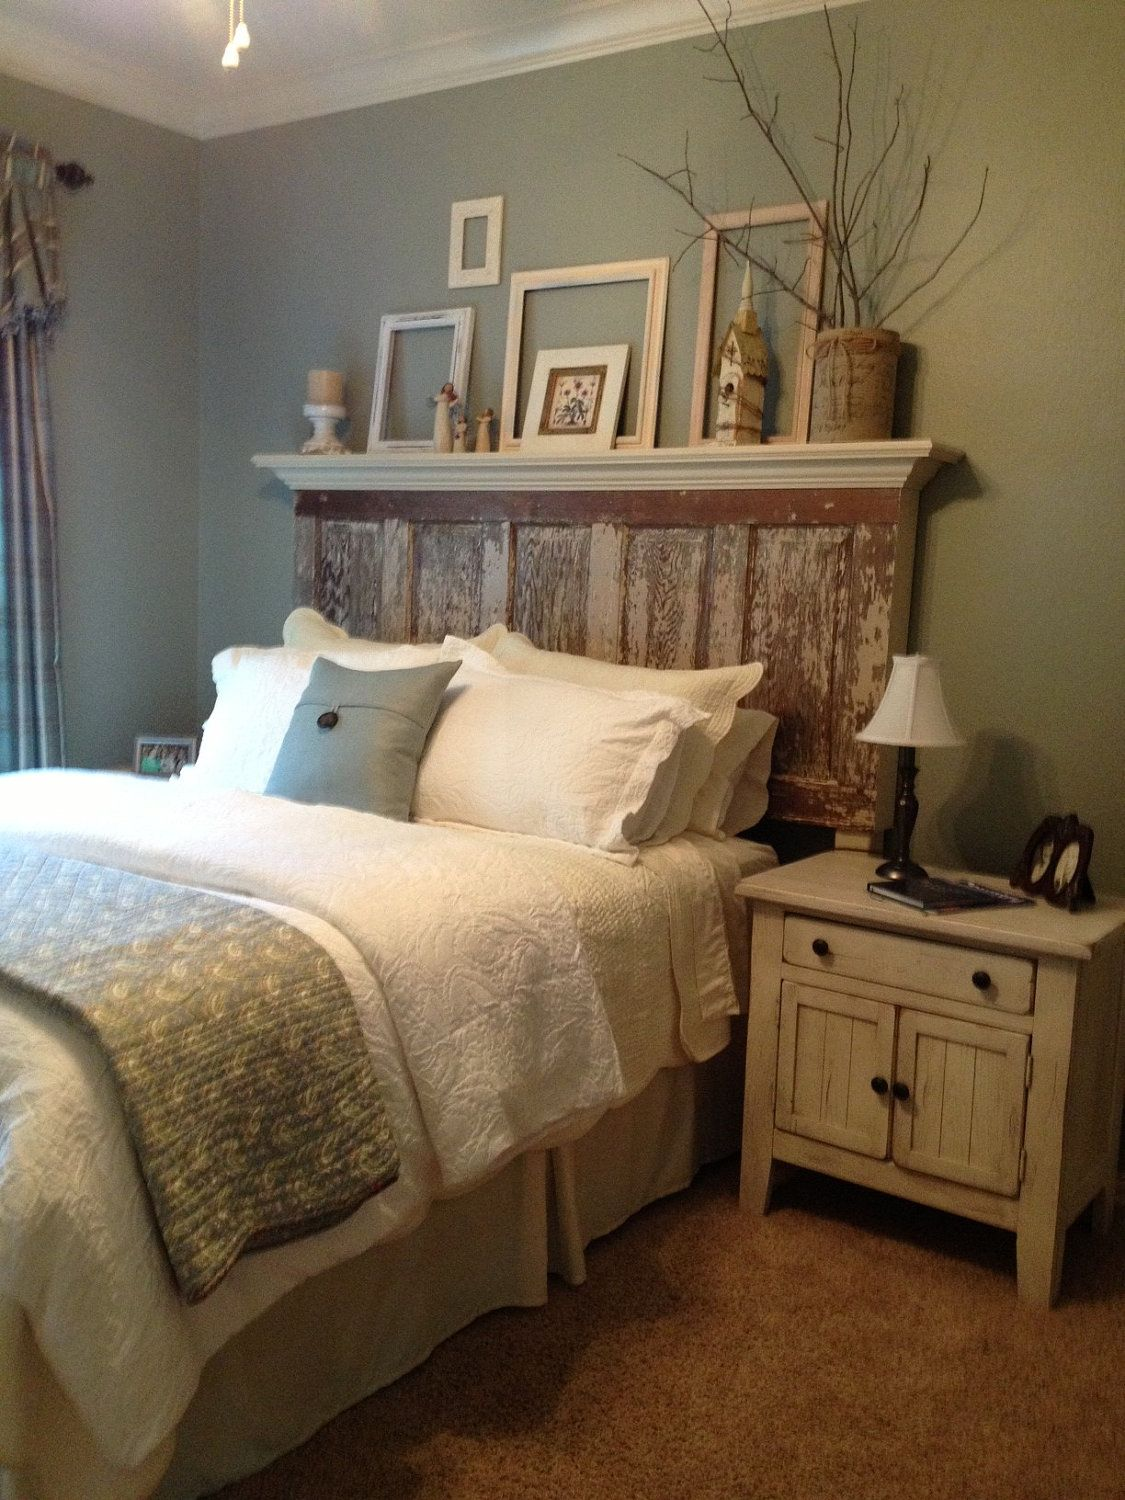 not the headboard, but the shelf above it | Home ideas | Pinterest ...